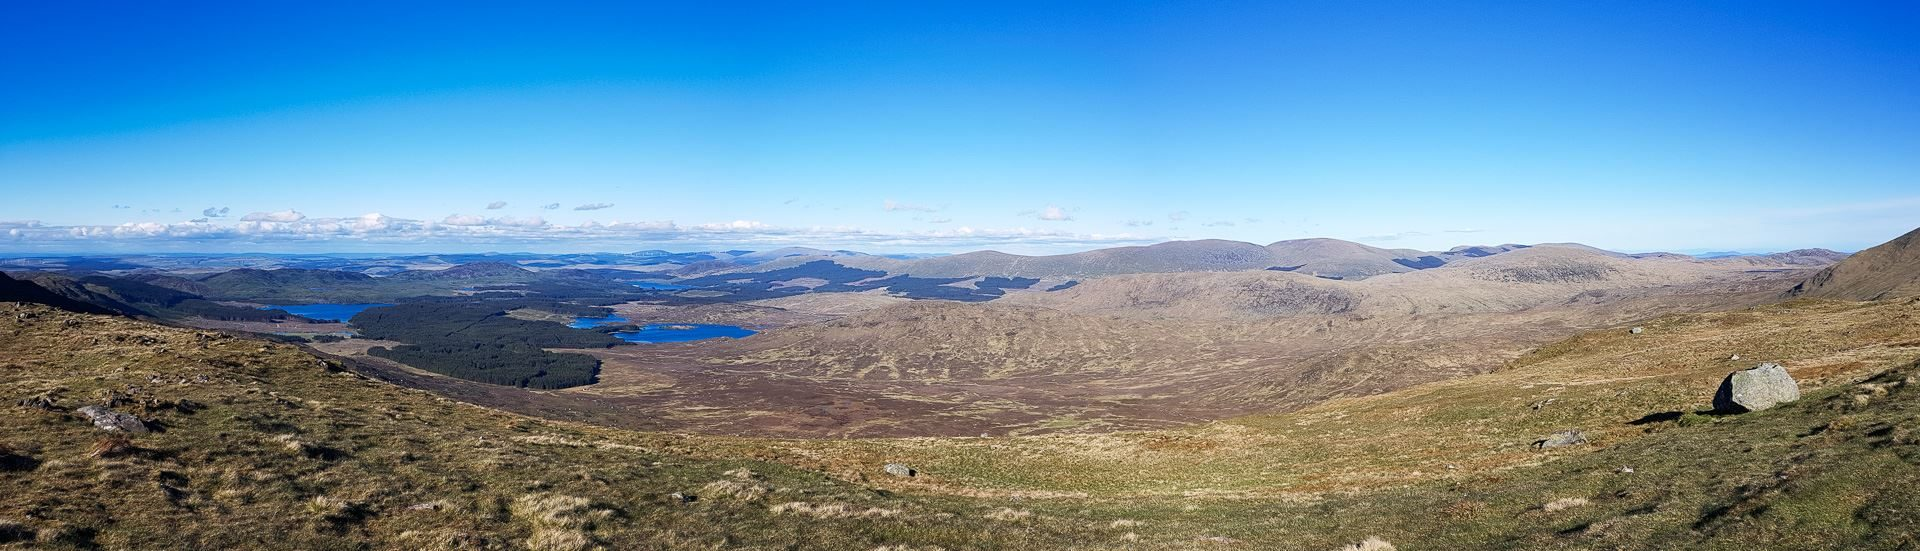 Across the hills and lochs of the Galloway hills